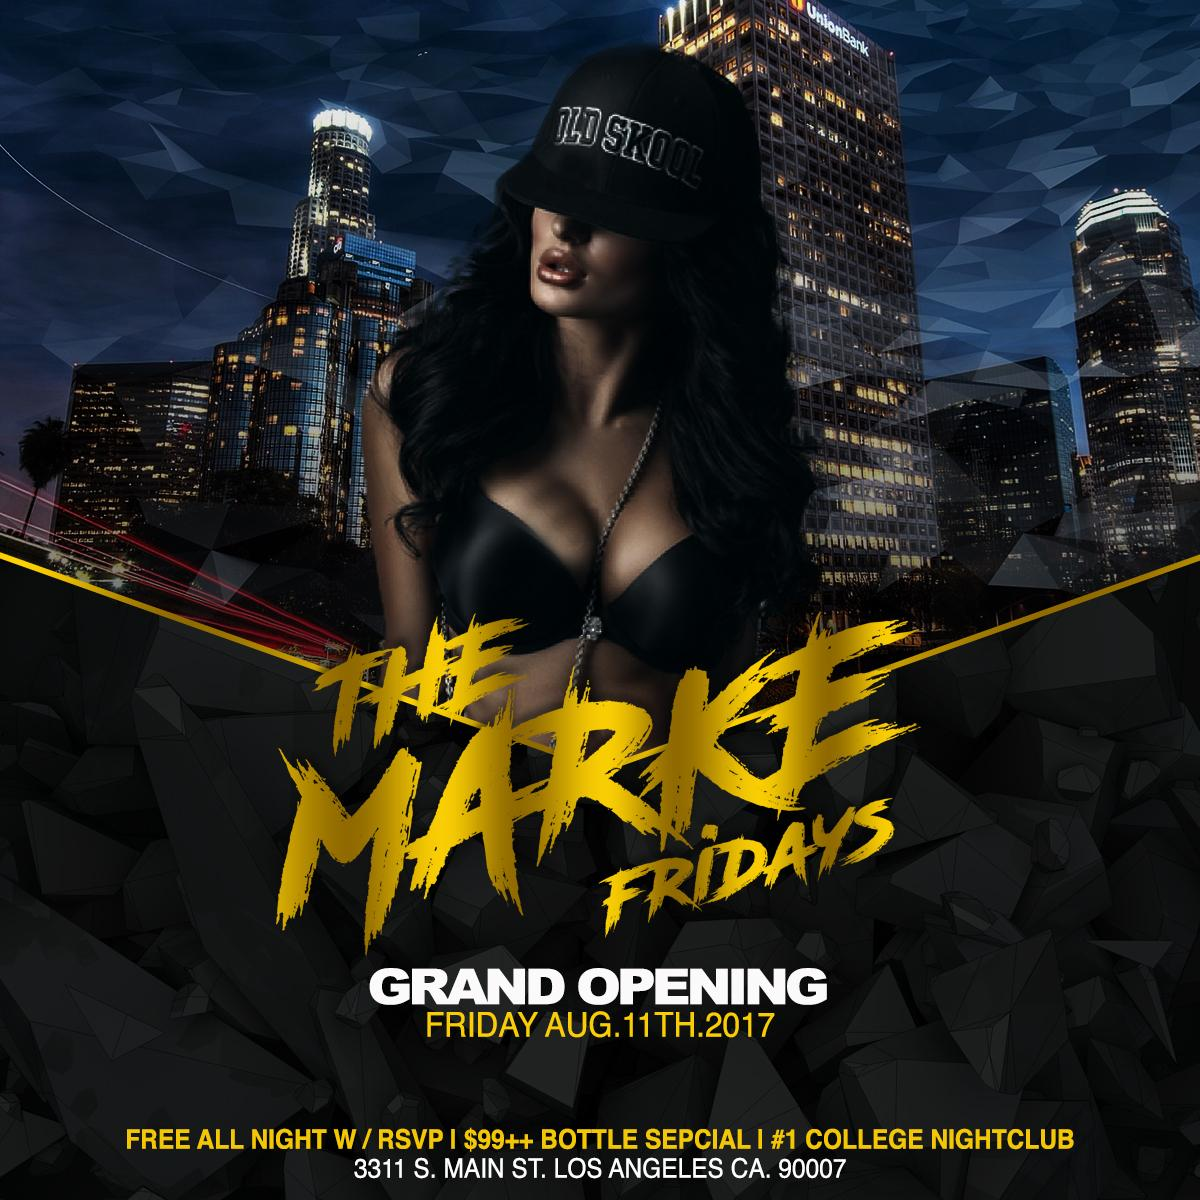 THE MARKE FRIDAYS! Your #1 College Nightclub!. THE MARKE FRIDAYS! Your #1 College Nightclub!